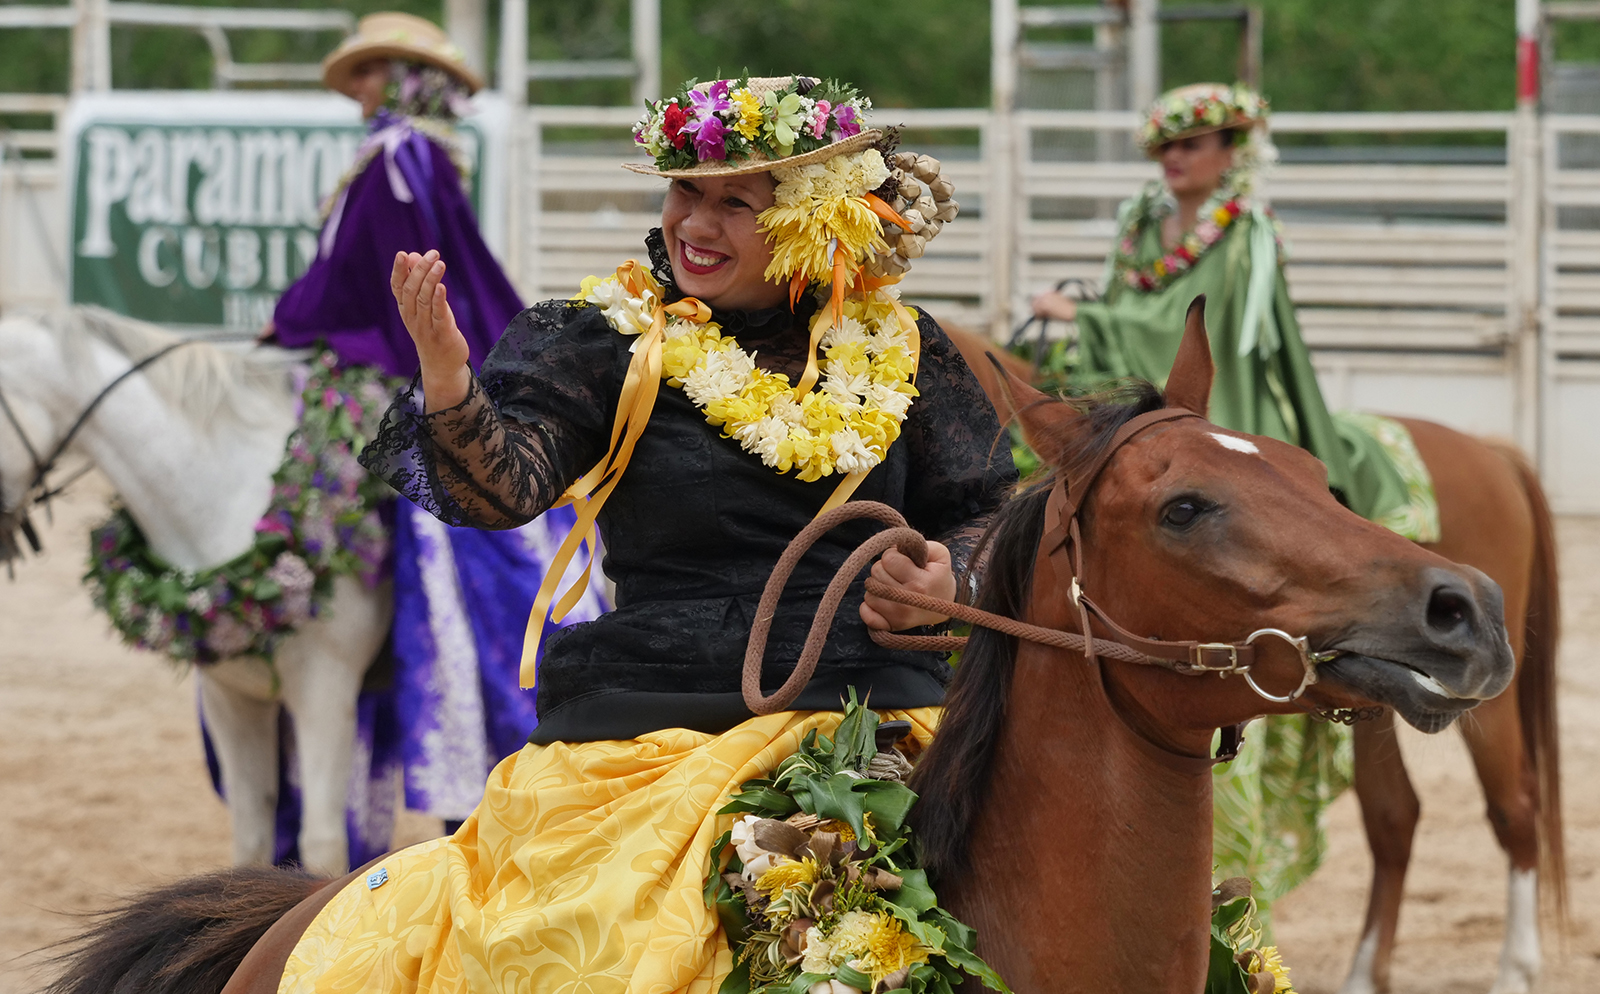 <p>Hawaii pa'u riders grace the arena during the opening ceremony. The pa'u riding tradition began in the early 19th century when horses were introduced to the islands.</p>